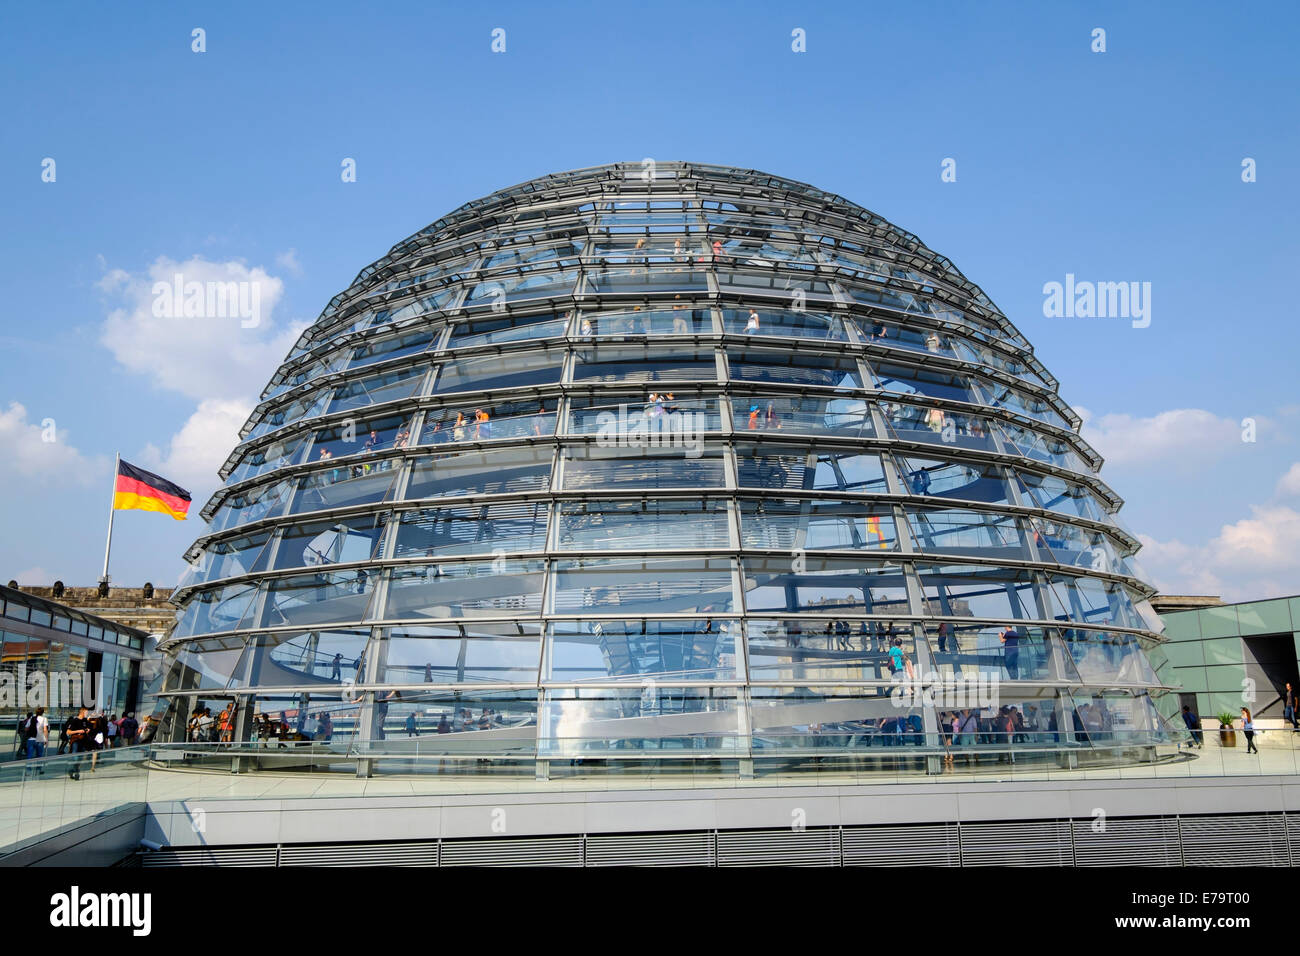 Glass dome roof of Reichstag parliament building in Berlin Germany - Stock Image